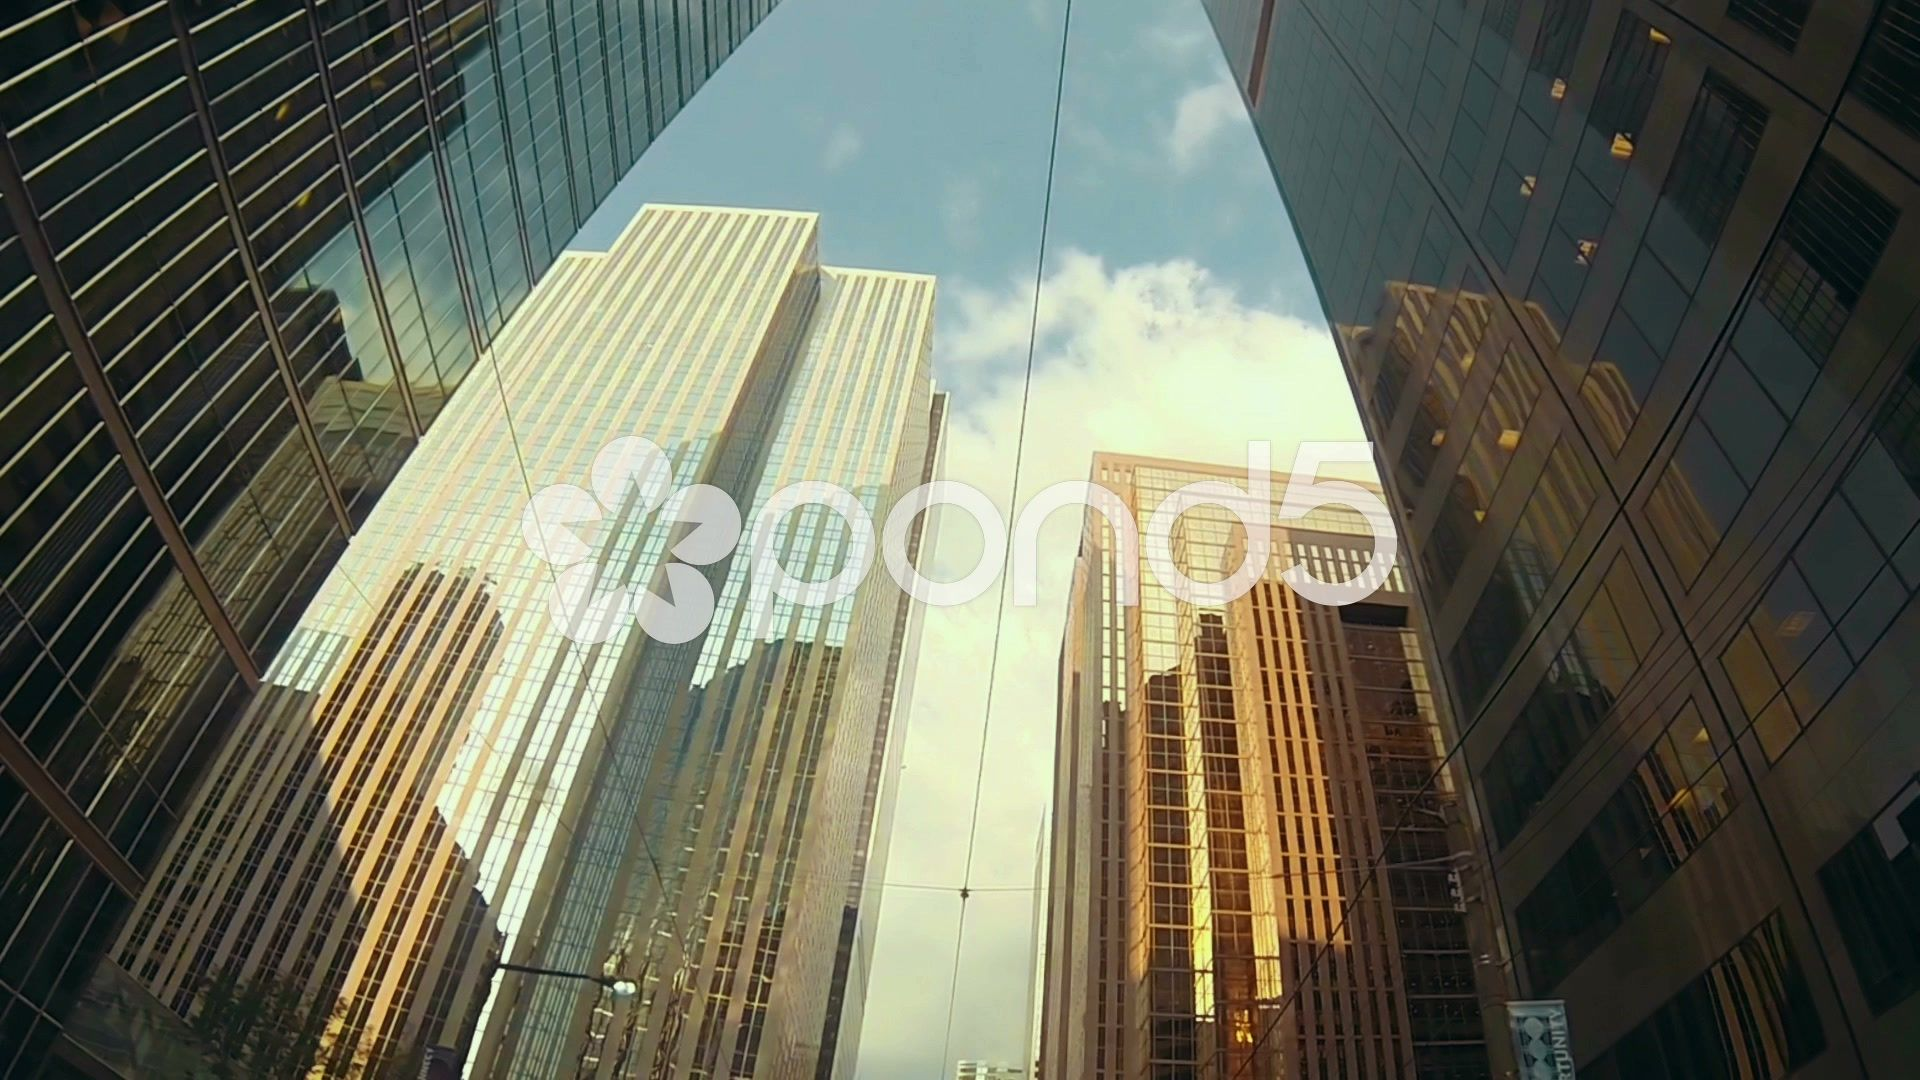 Skyscrapers And Buildings Of A Large City Banking And Financial District Stock Footage Large City Skyscrapers Buildin Financial District Bad Debt Skyscraper